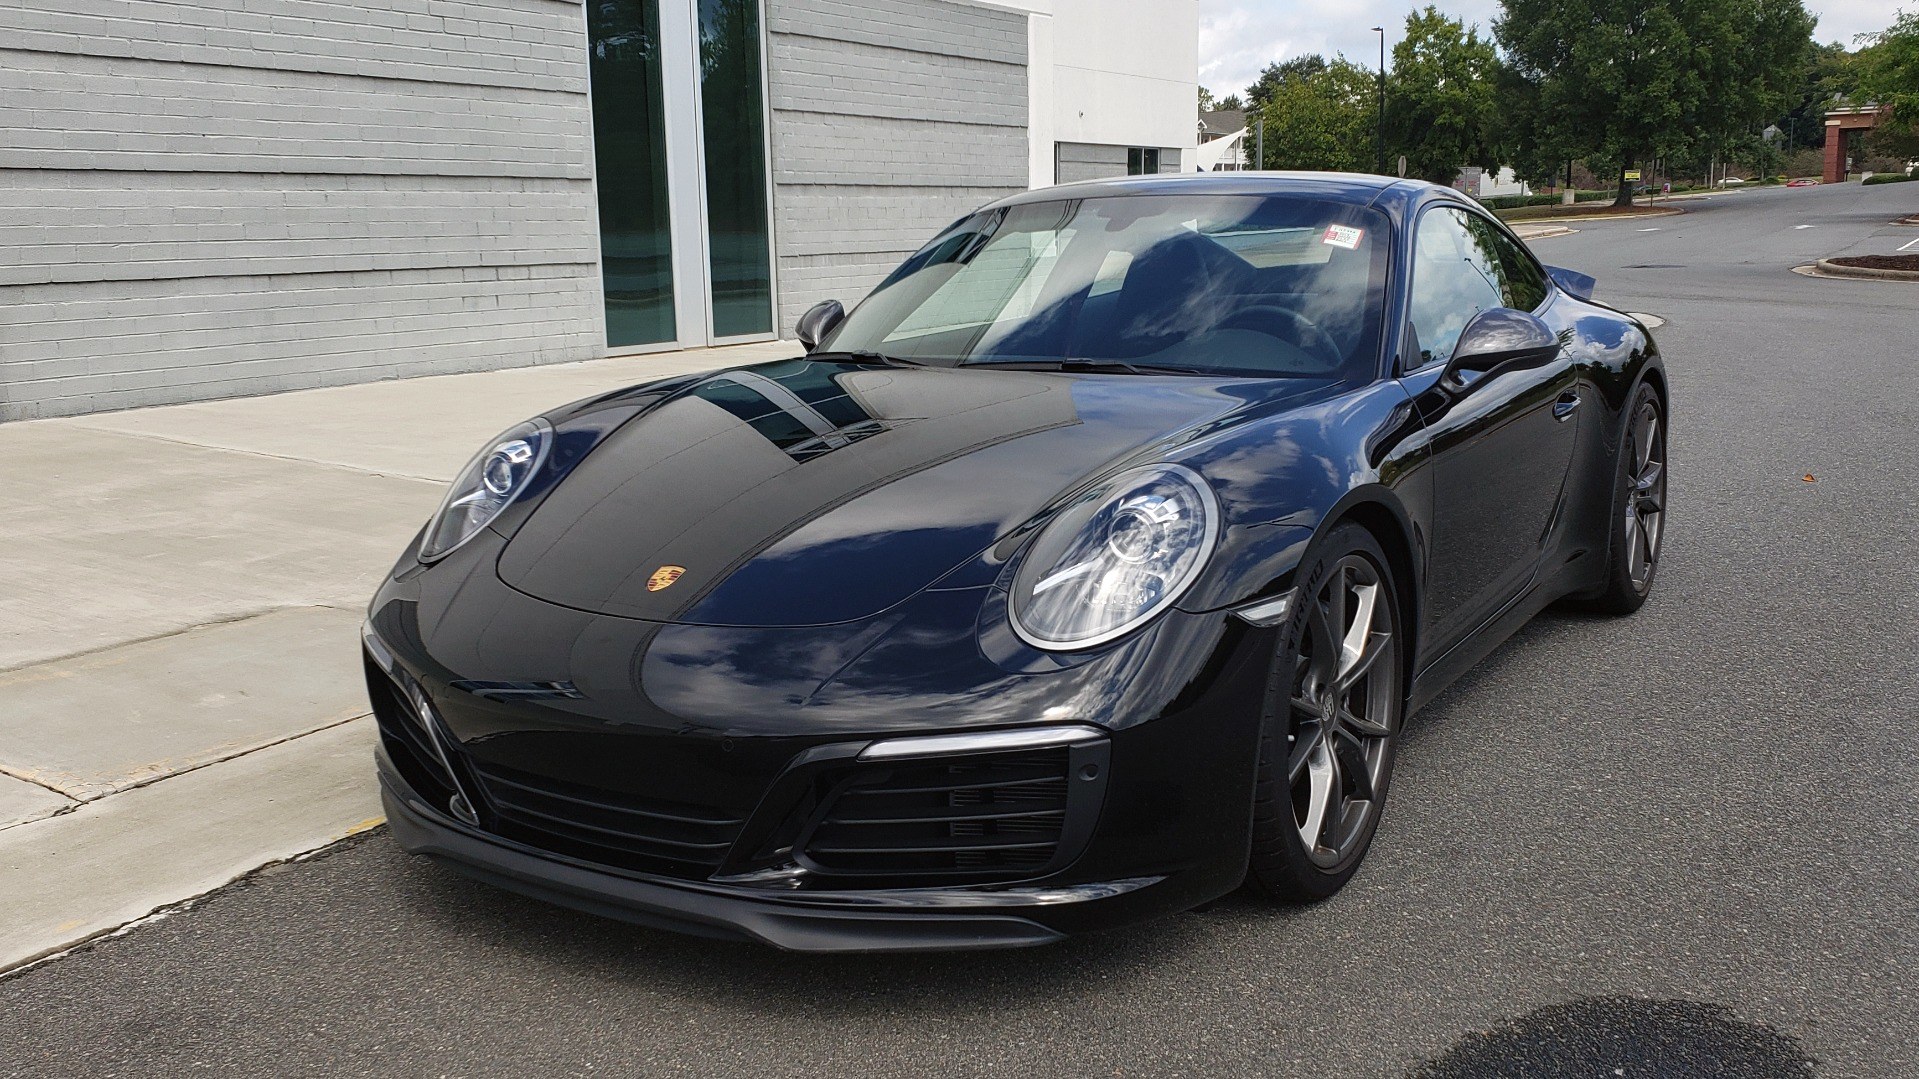 Used 2019 Porsche 911 CARRERA T / 3.0L H6 / MANUAL / PREMIUM / NAV / BOSE / SUNROOF / REARVIEW for sale $117,000 at Formula Imports in Charlotte NC 28227 4